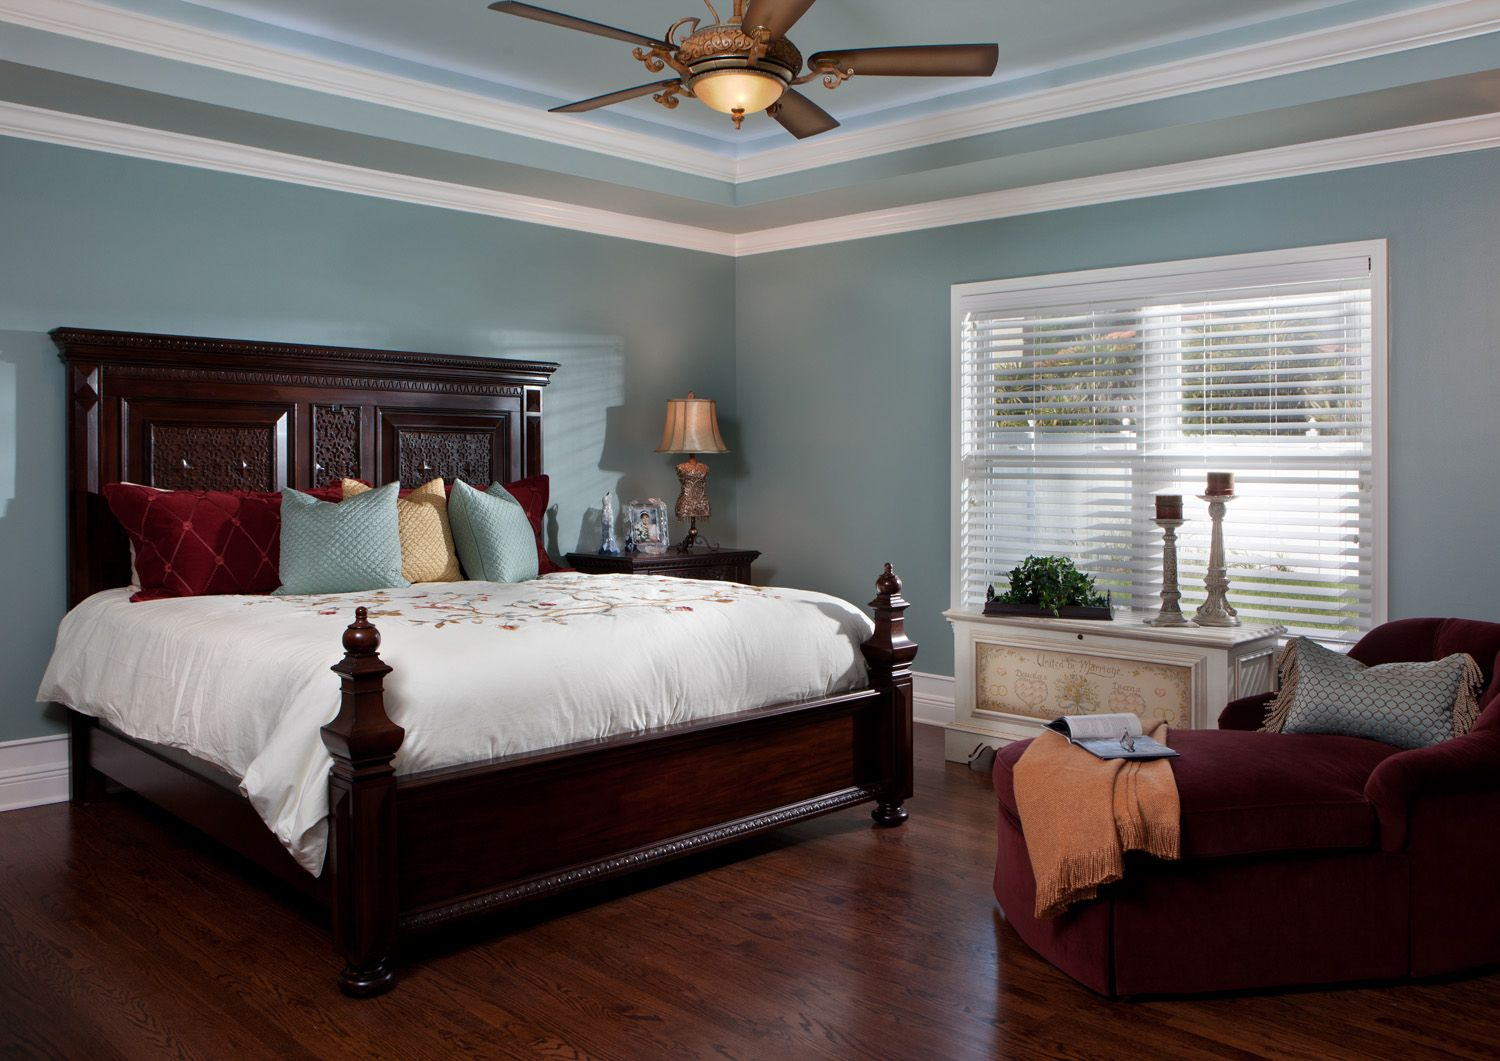 Wondrous Tray Ceilings In Bedrooms Largest Home Design Picture Inspirations Pitcheantrous